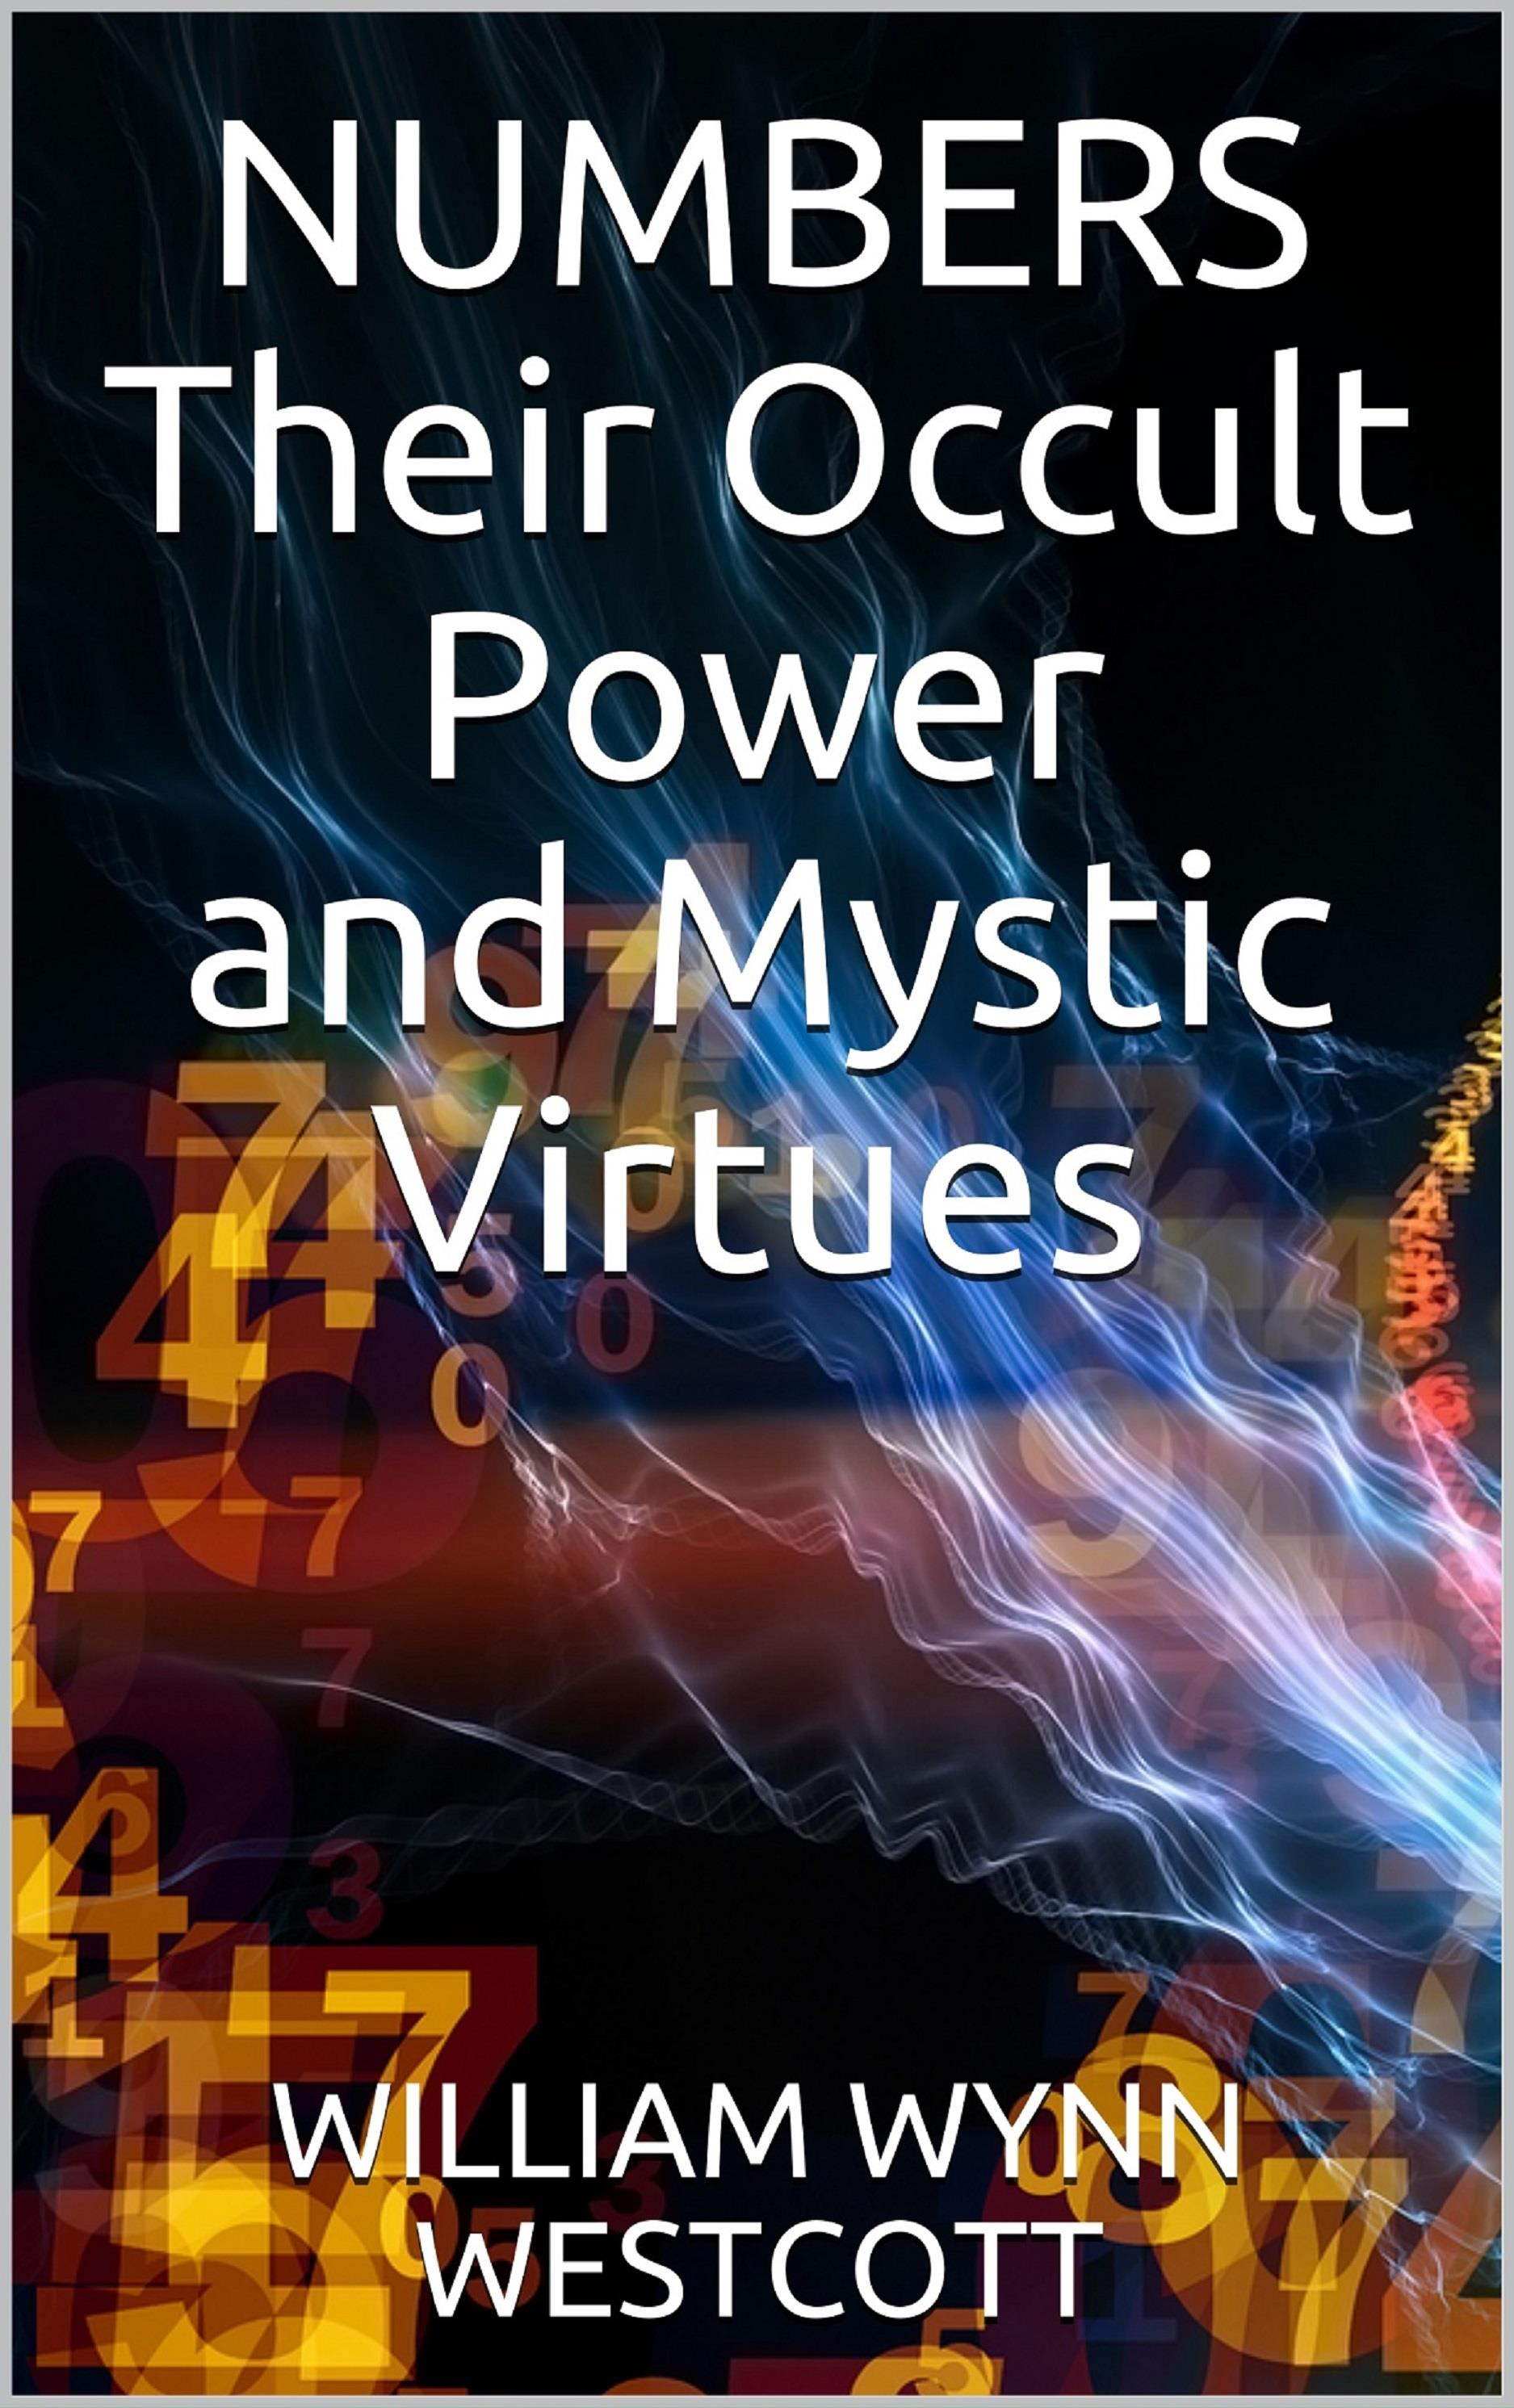 Numbers - Their Occult Power And Mystic Virtues